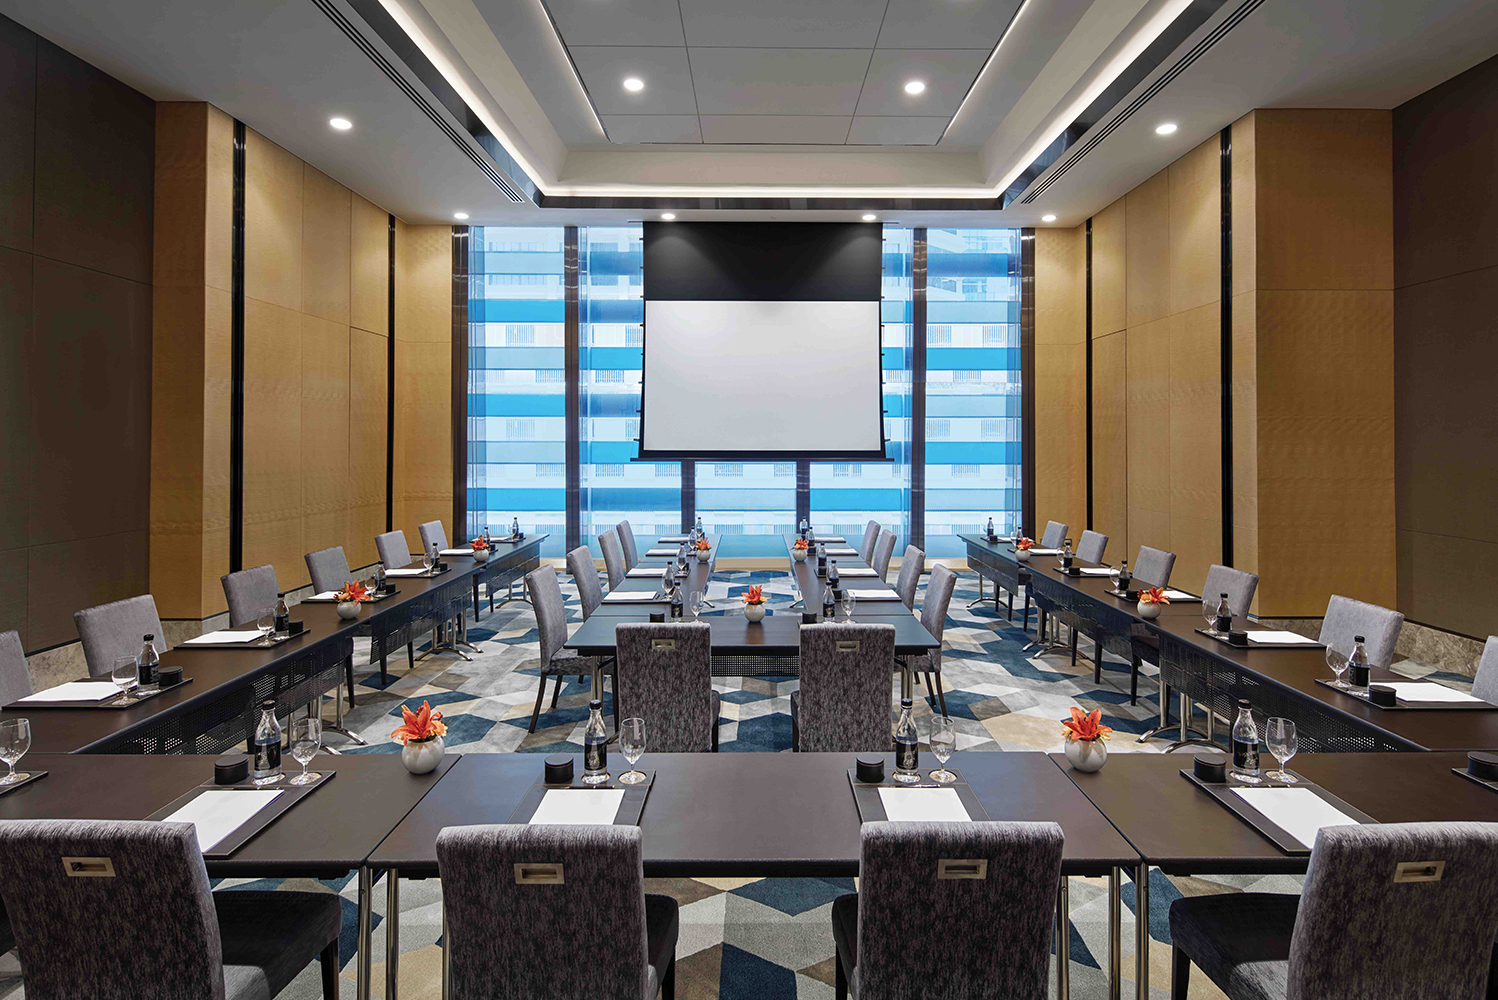 For events, the property will have 20,000 square feet of meeting spaces across 10 flexible venues.